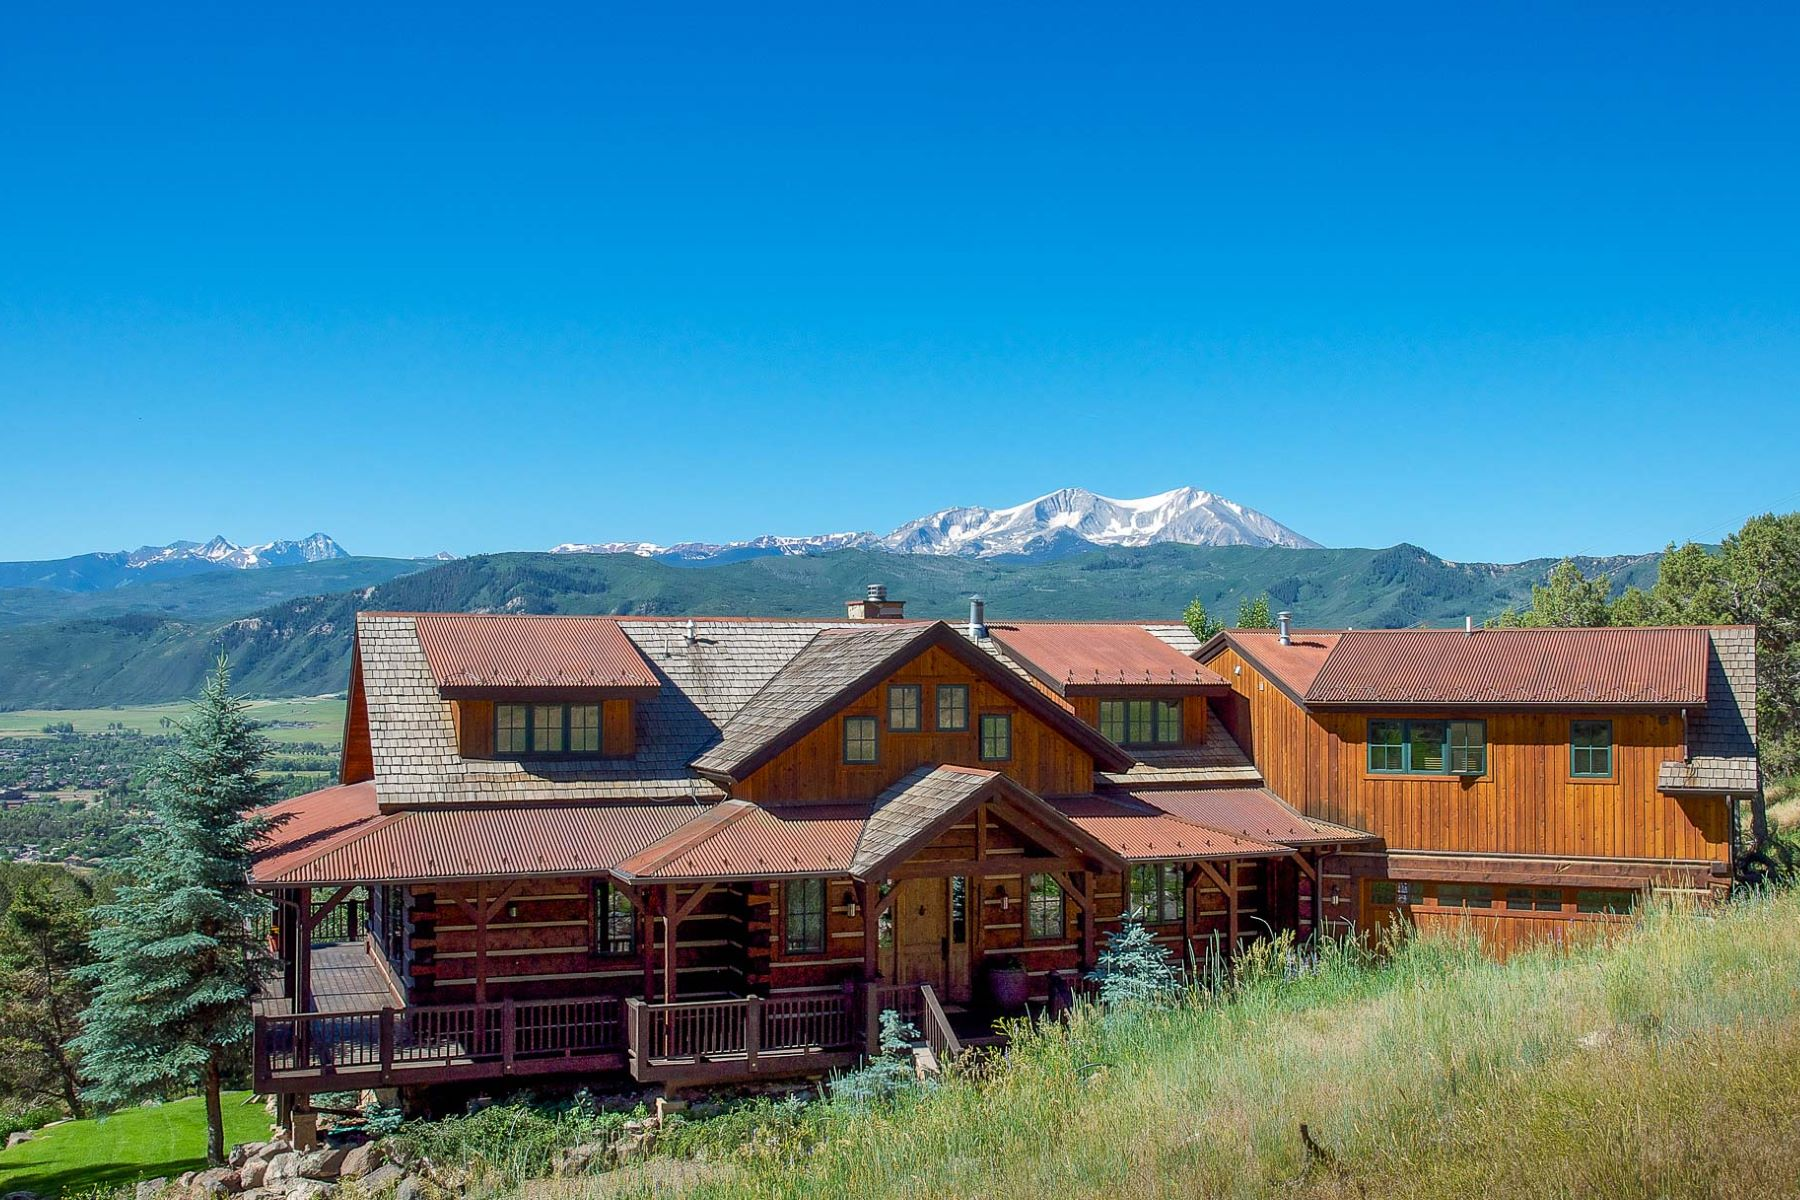 Single Family Home for Sale at Log Home with Majestic Views Carbondale, Colorado, 81623 United States